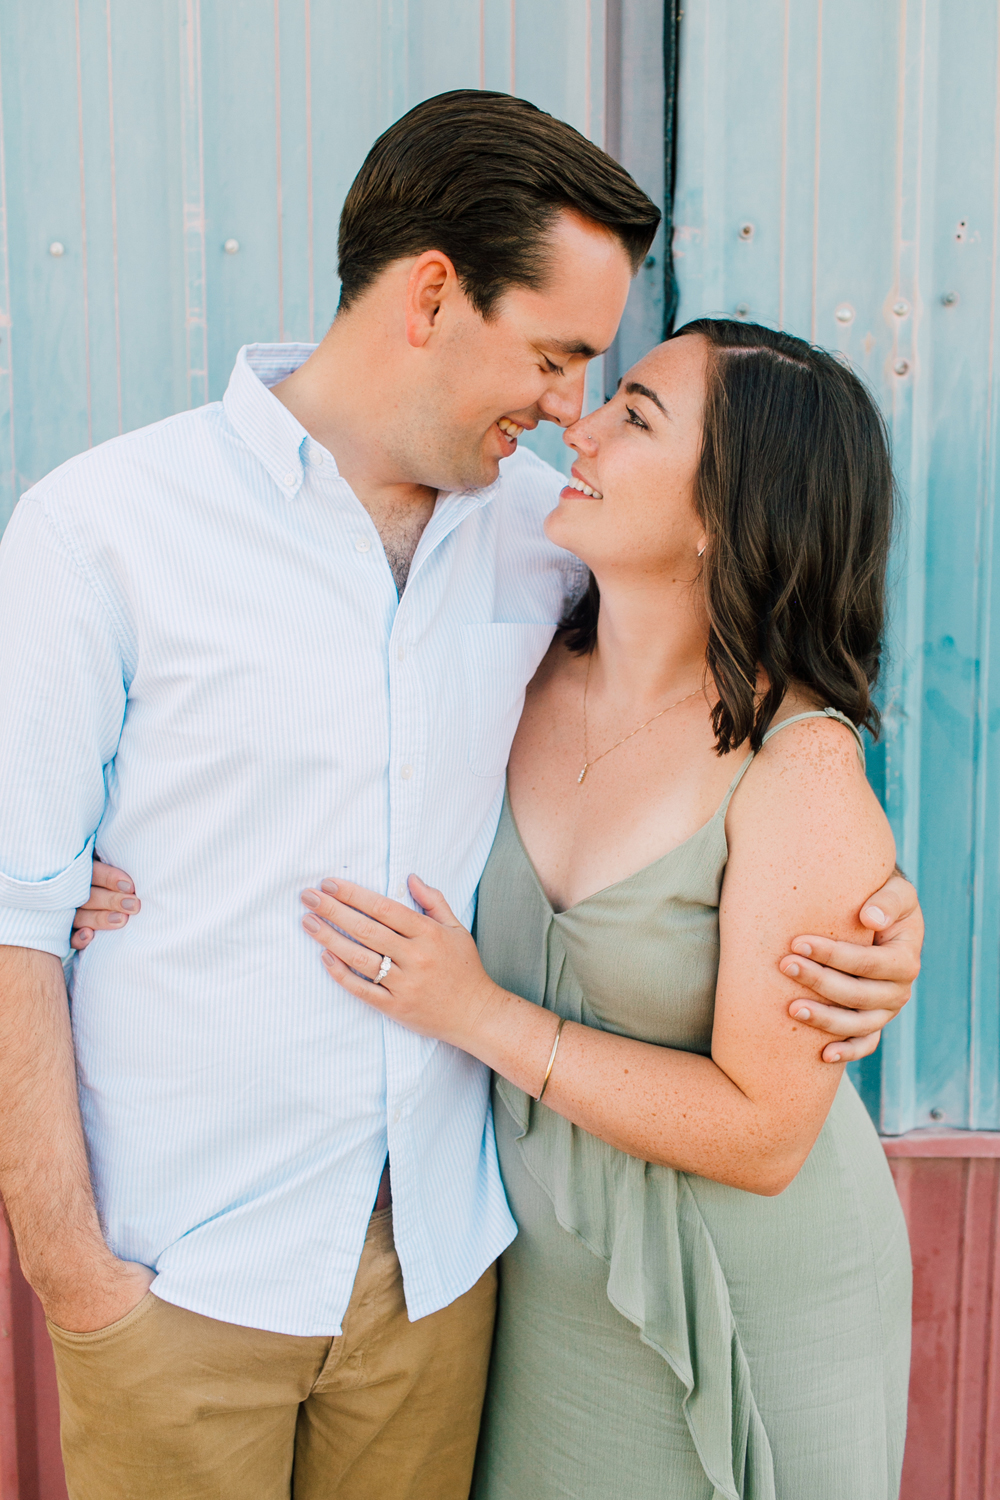 017-bellingham-engagement-photographer-katheyrn-moran-fairhaven-stones-throw-katie-max.jpg